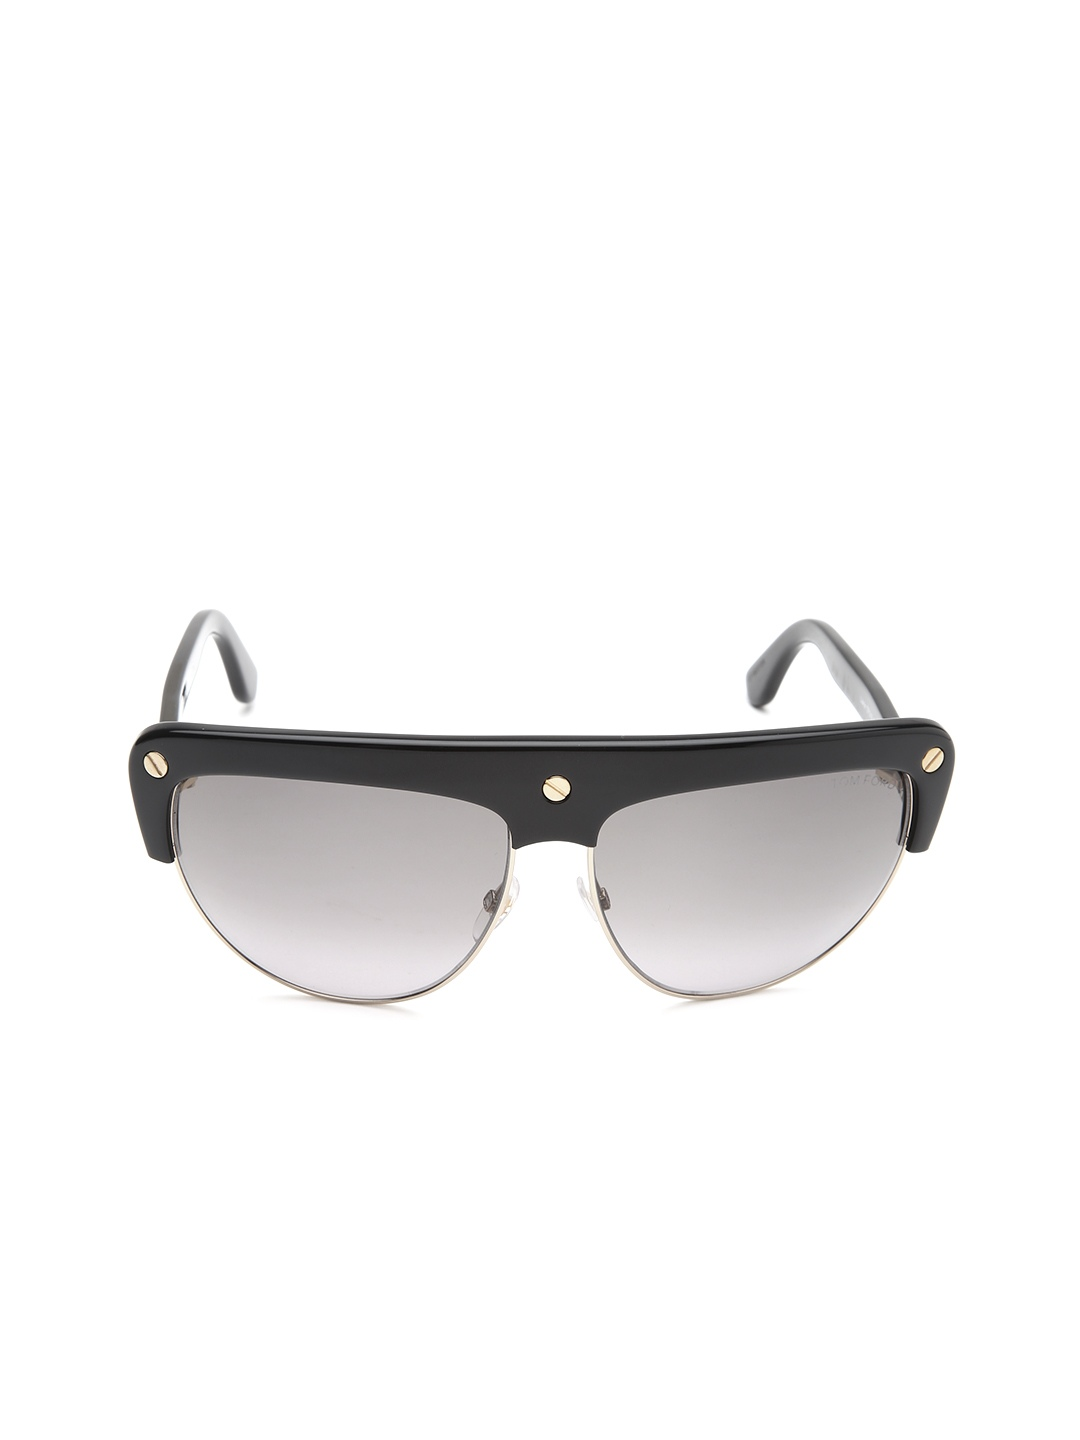 2382d9d32405 Clubmaster Sunglasses Buy At Cheapest Price In India